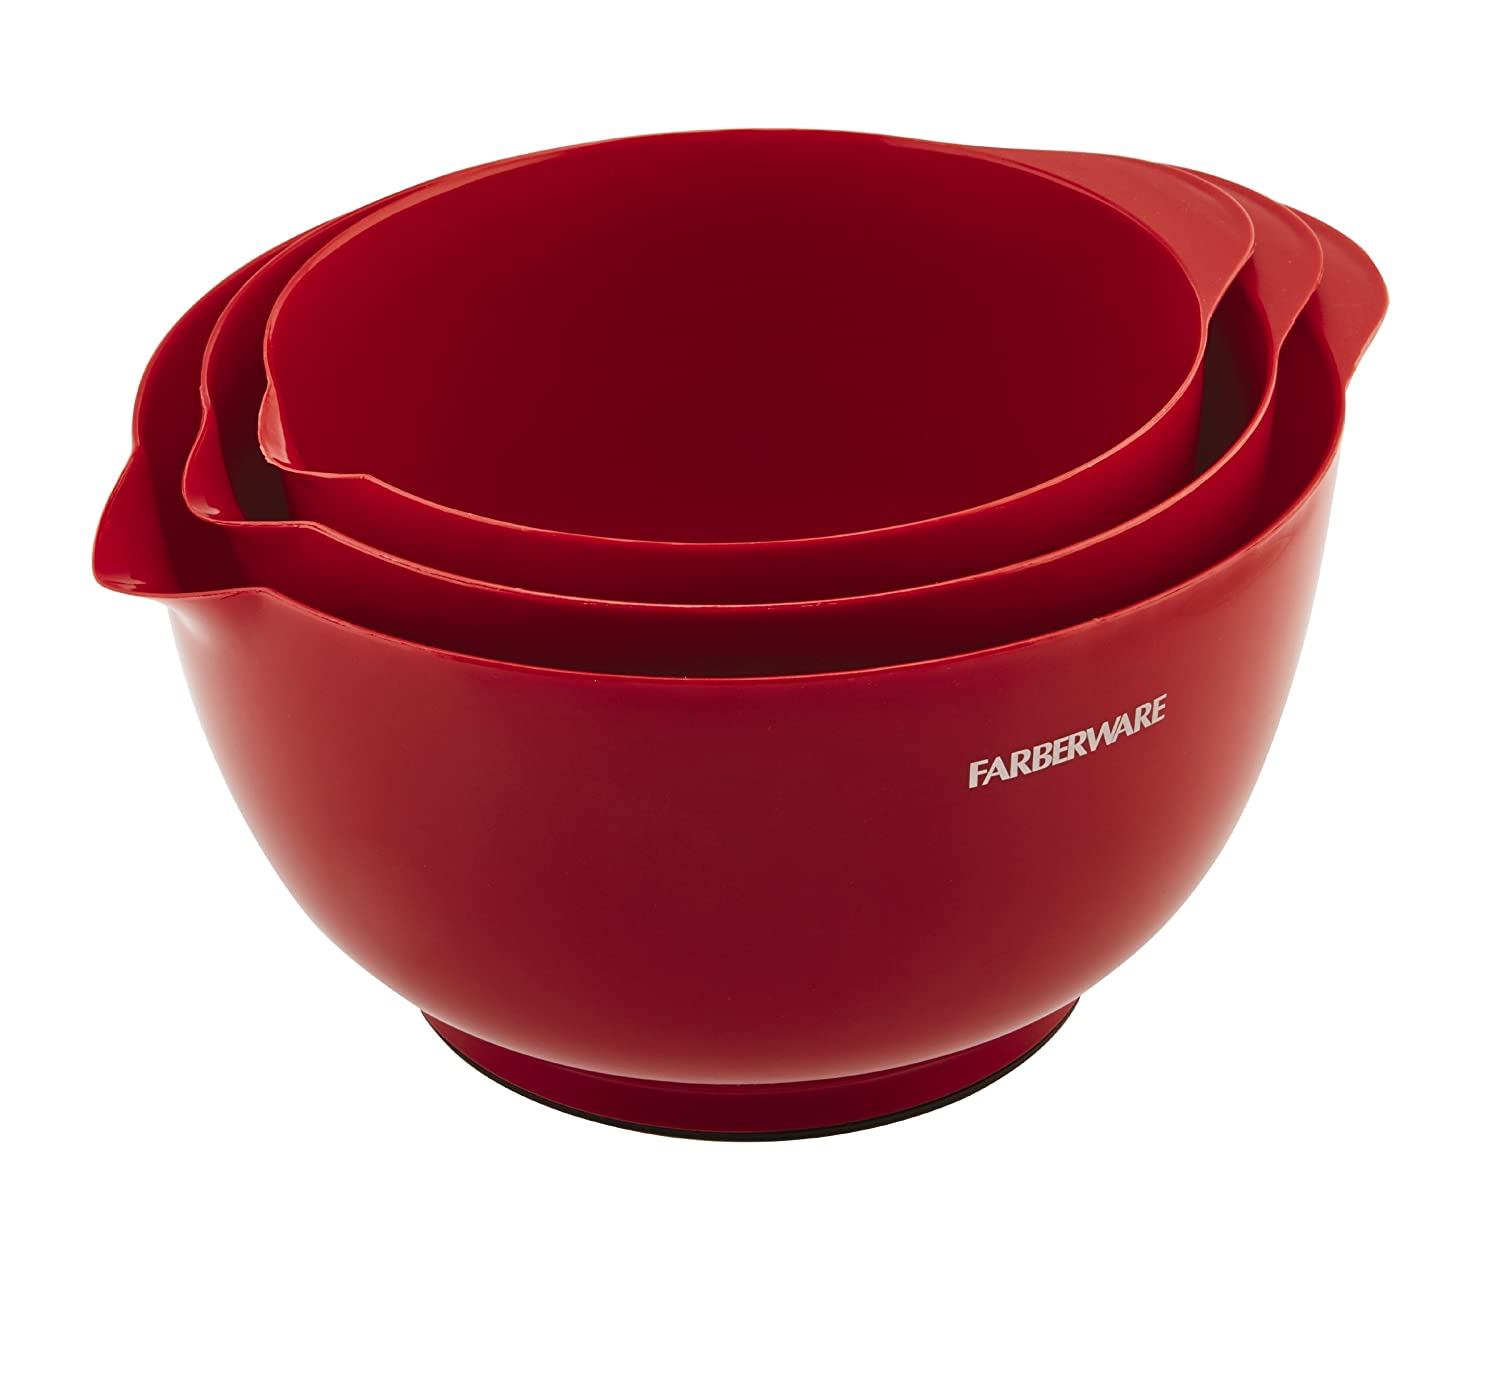 Farberware Classic Plastic Mixing Bowls (Mixed Colors, Set of 3) Lifetime Brands 5083275